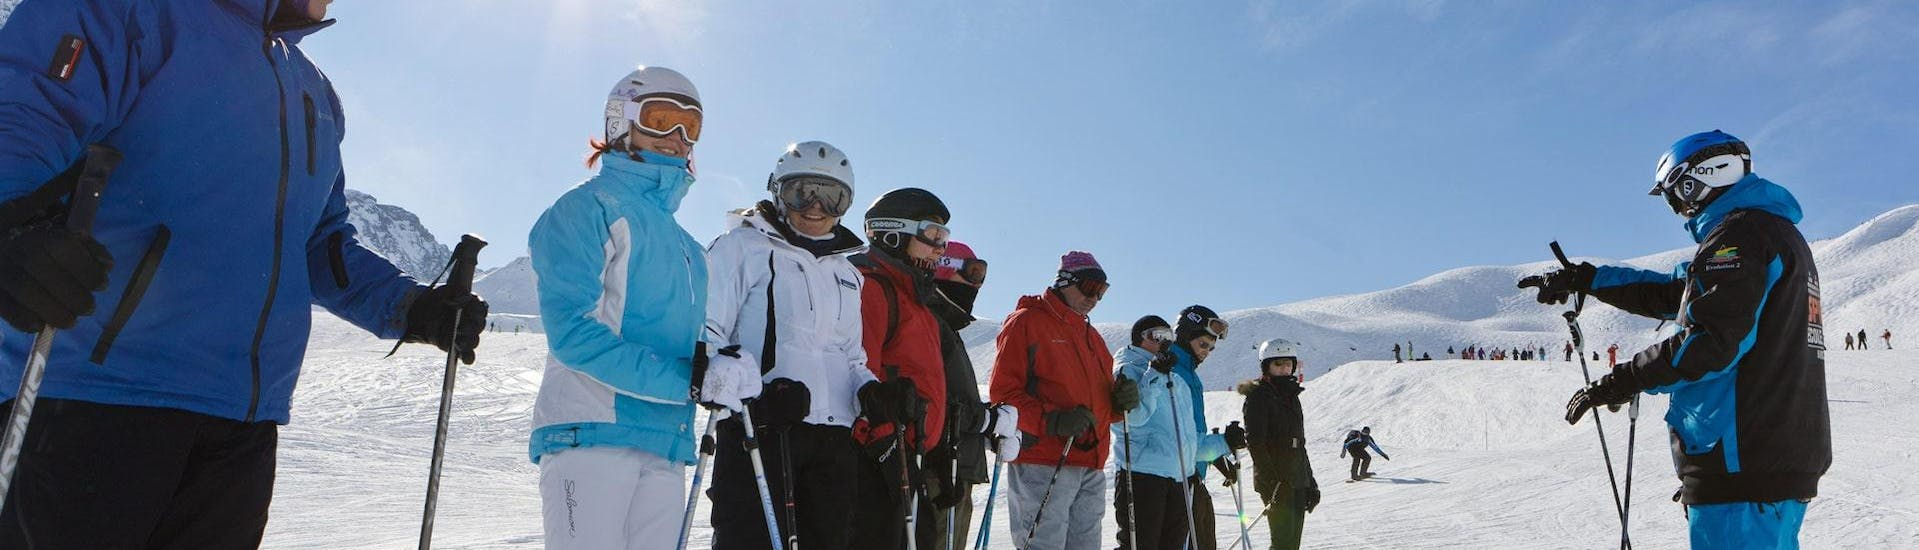 Adult Ski Lessons for All Levels - High Season - Arc 1950